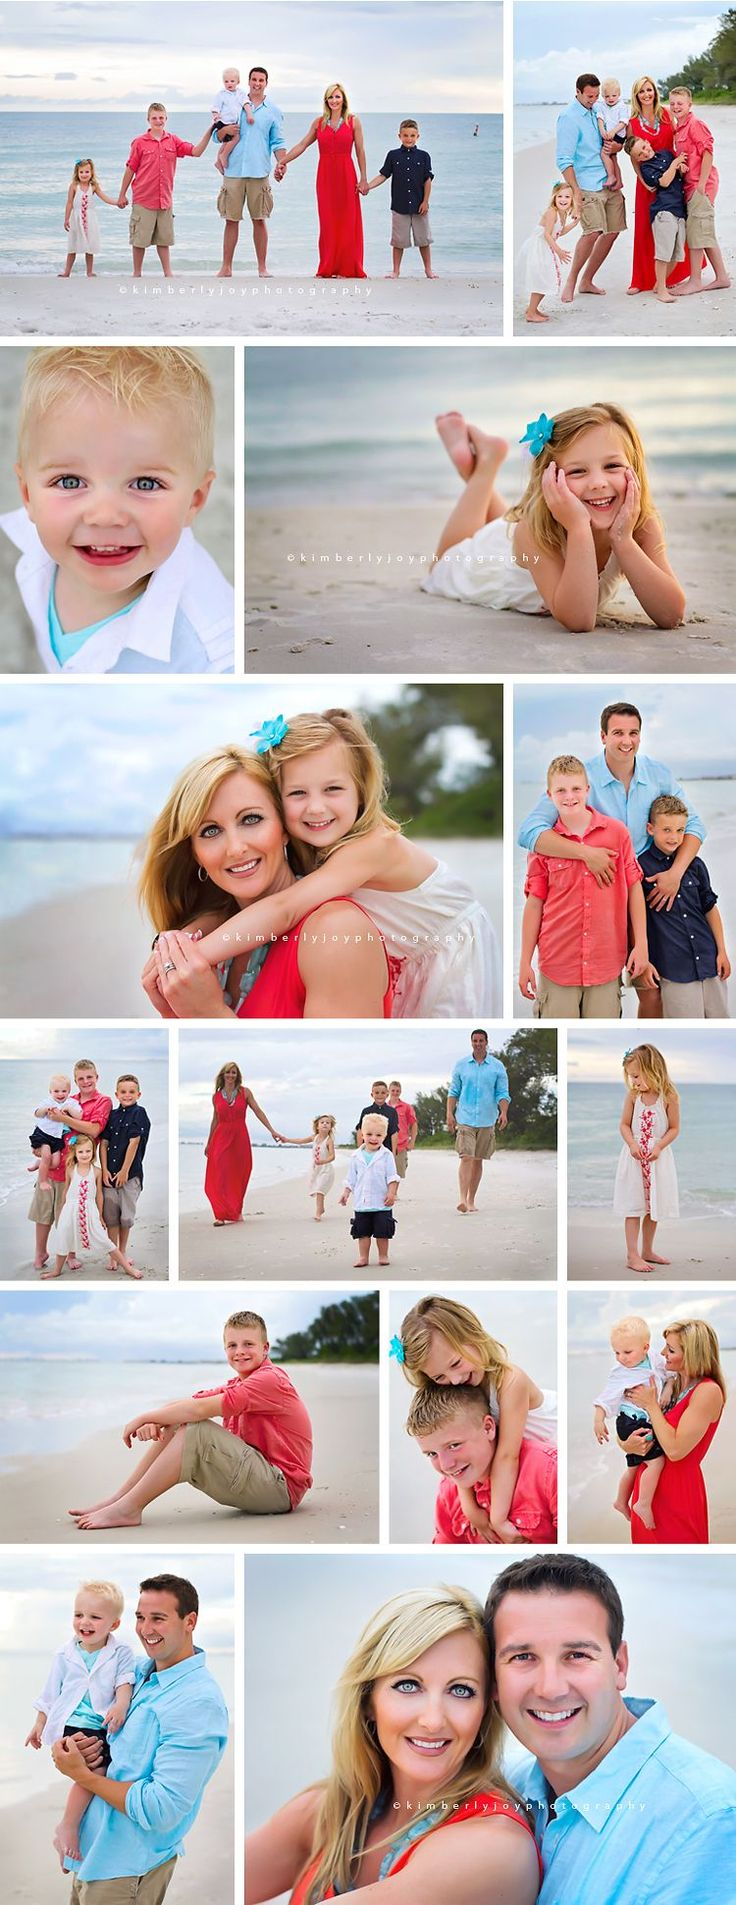 Naples, FL Family Beach Photographer | The N Family. | Naples, FL Newborn Photographer, Family Photographer, Children Photographer, Maternit...